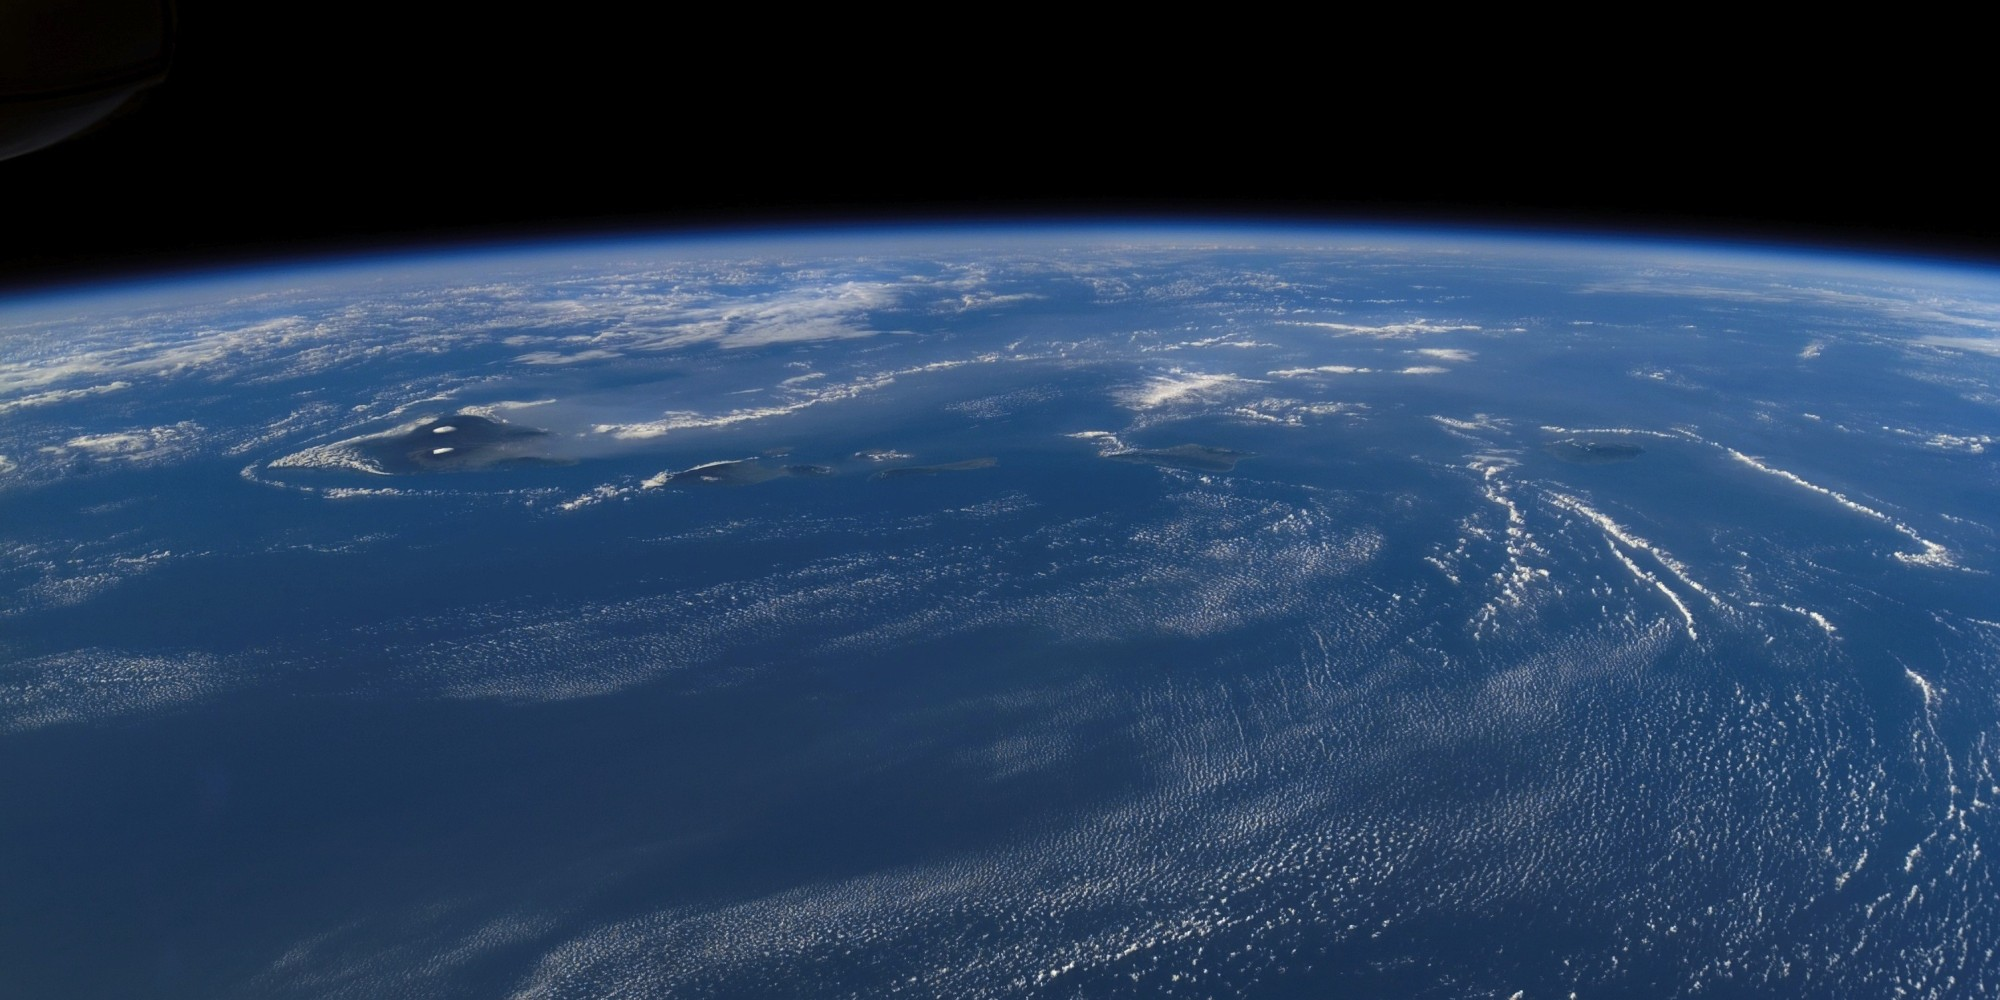 Hawaii Space Photos Prove Earth's Most Isolated Landmass ...